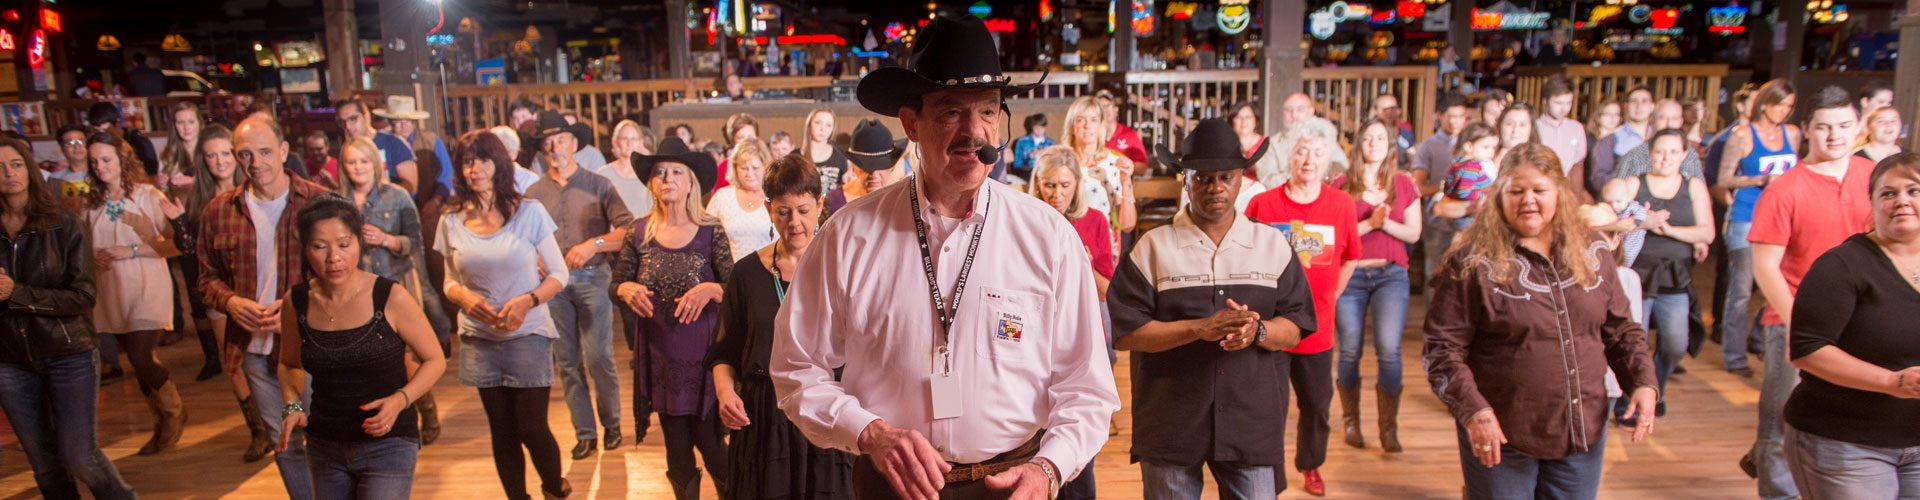 Line Dance, Dallas, Texas